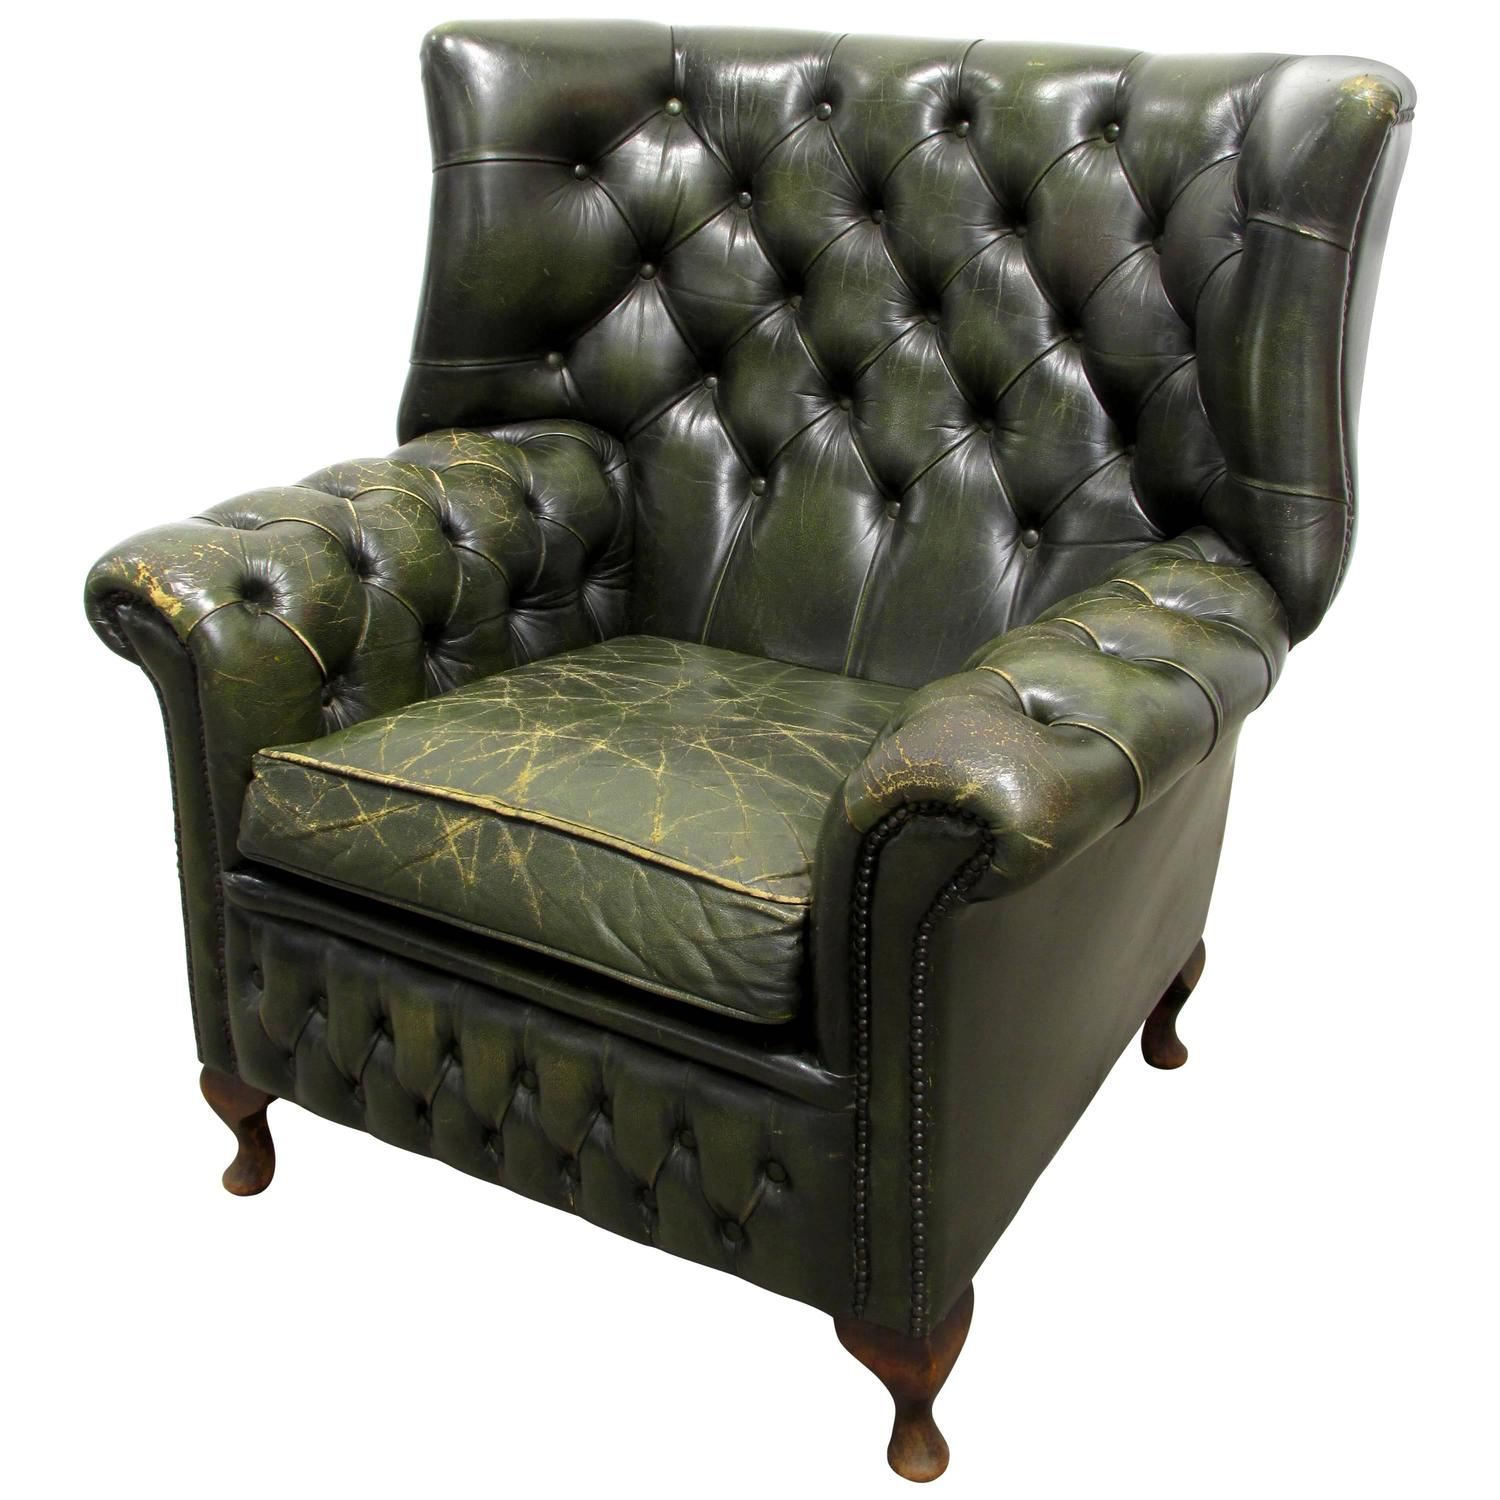 Leather Wing Back Chair Green Tufted Leather Wingback Chair For Sale At 1stdibs